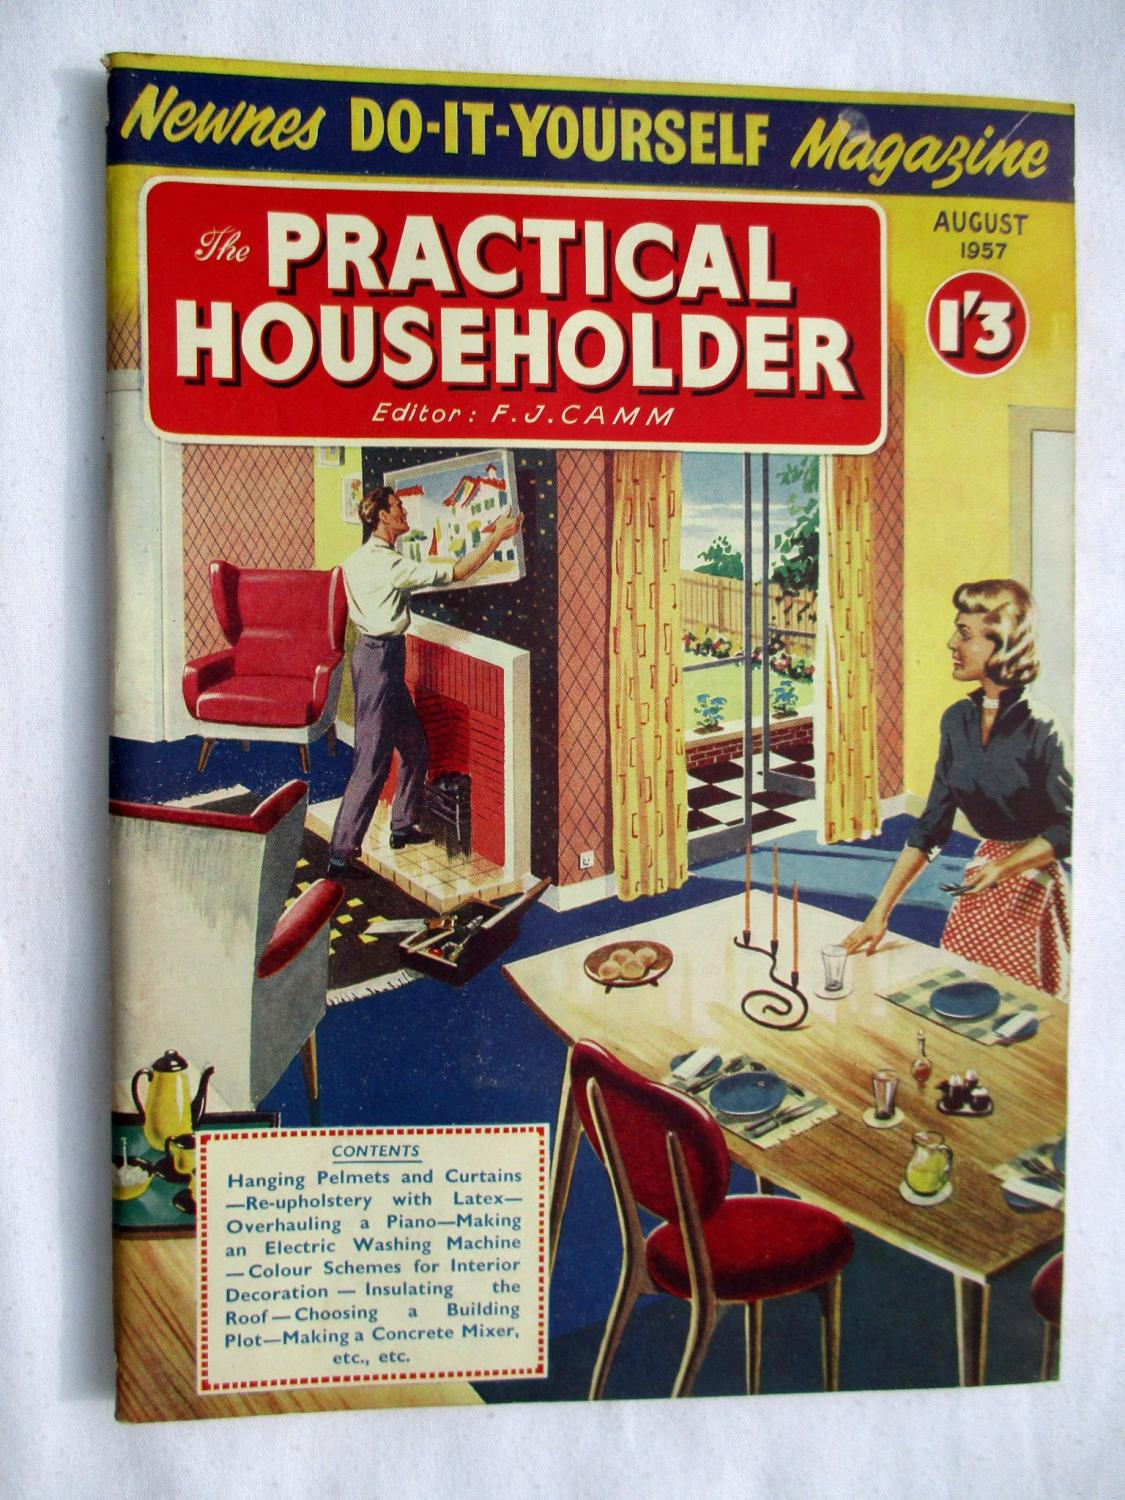 The practical householder august 1957 newnes do it yourself the practical householder august 1957 newnes do it yourself magazine camm solutioingenieria Gallery